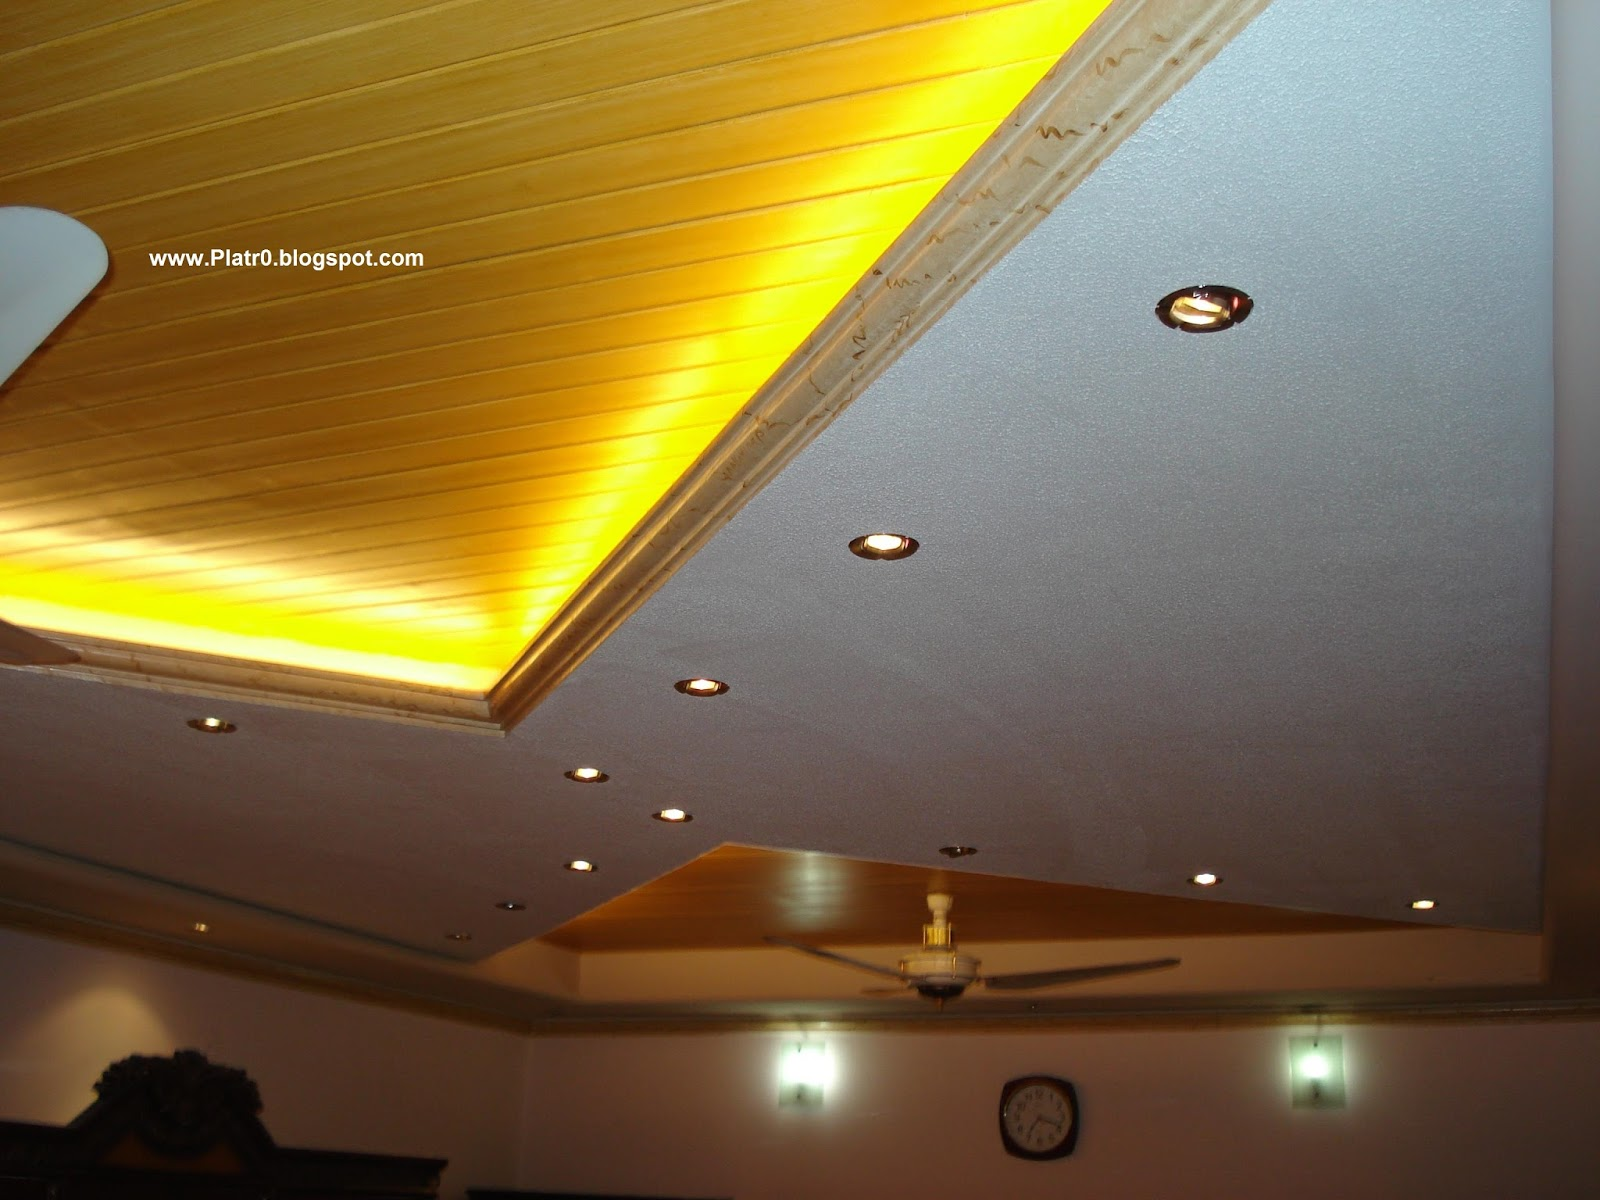 Mode ceiling lights led 2016 d coration platre maroc for Dicor platre 2016